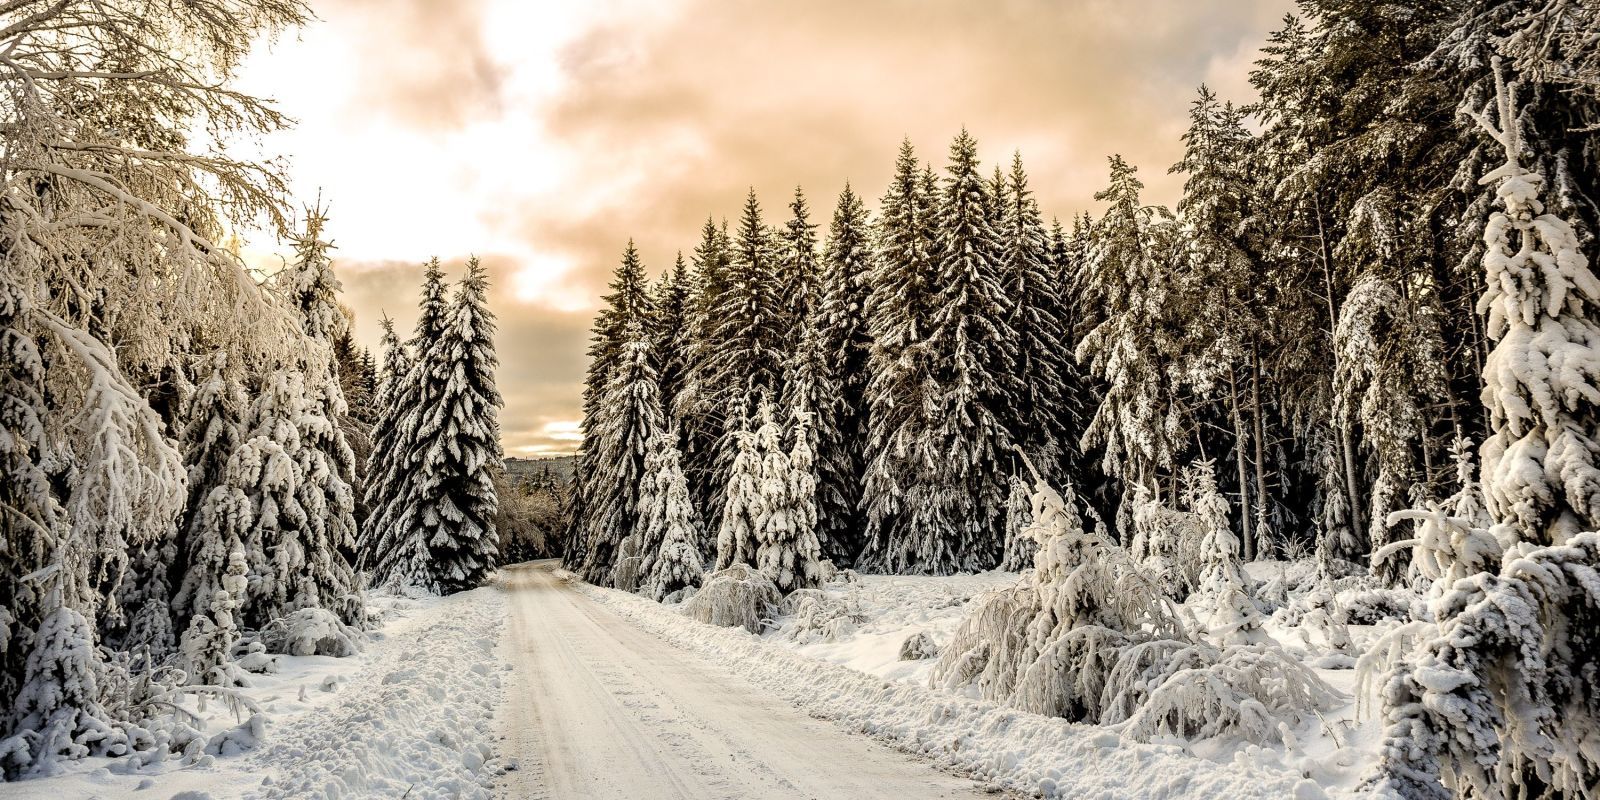 Winter Pictures - Breathtaking Photos of Winter Landscapes